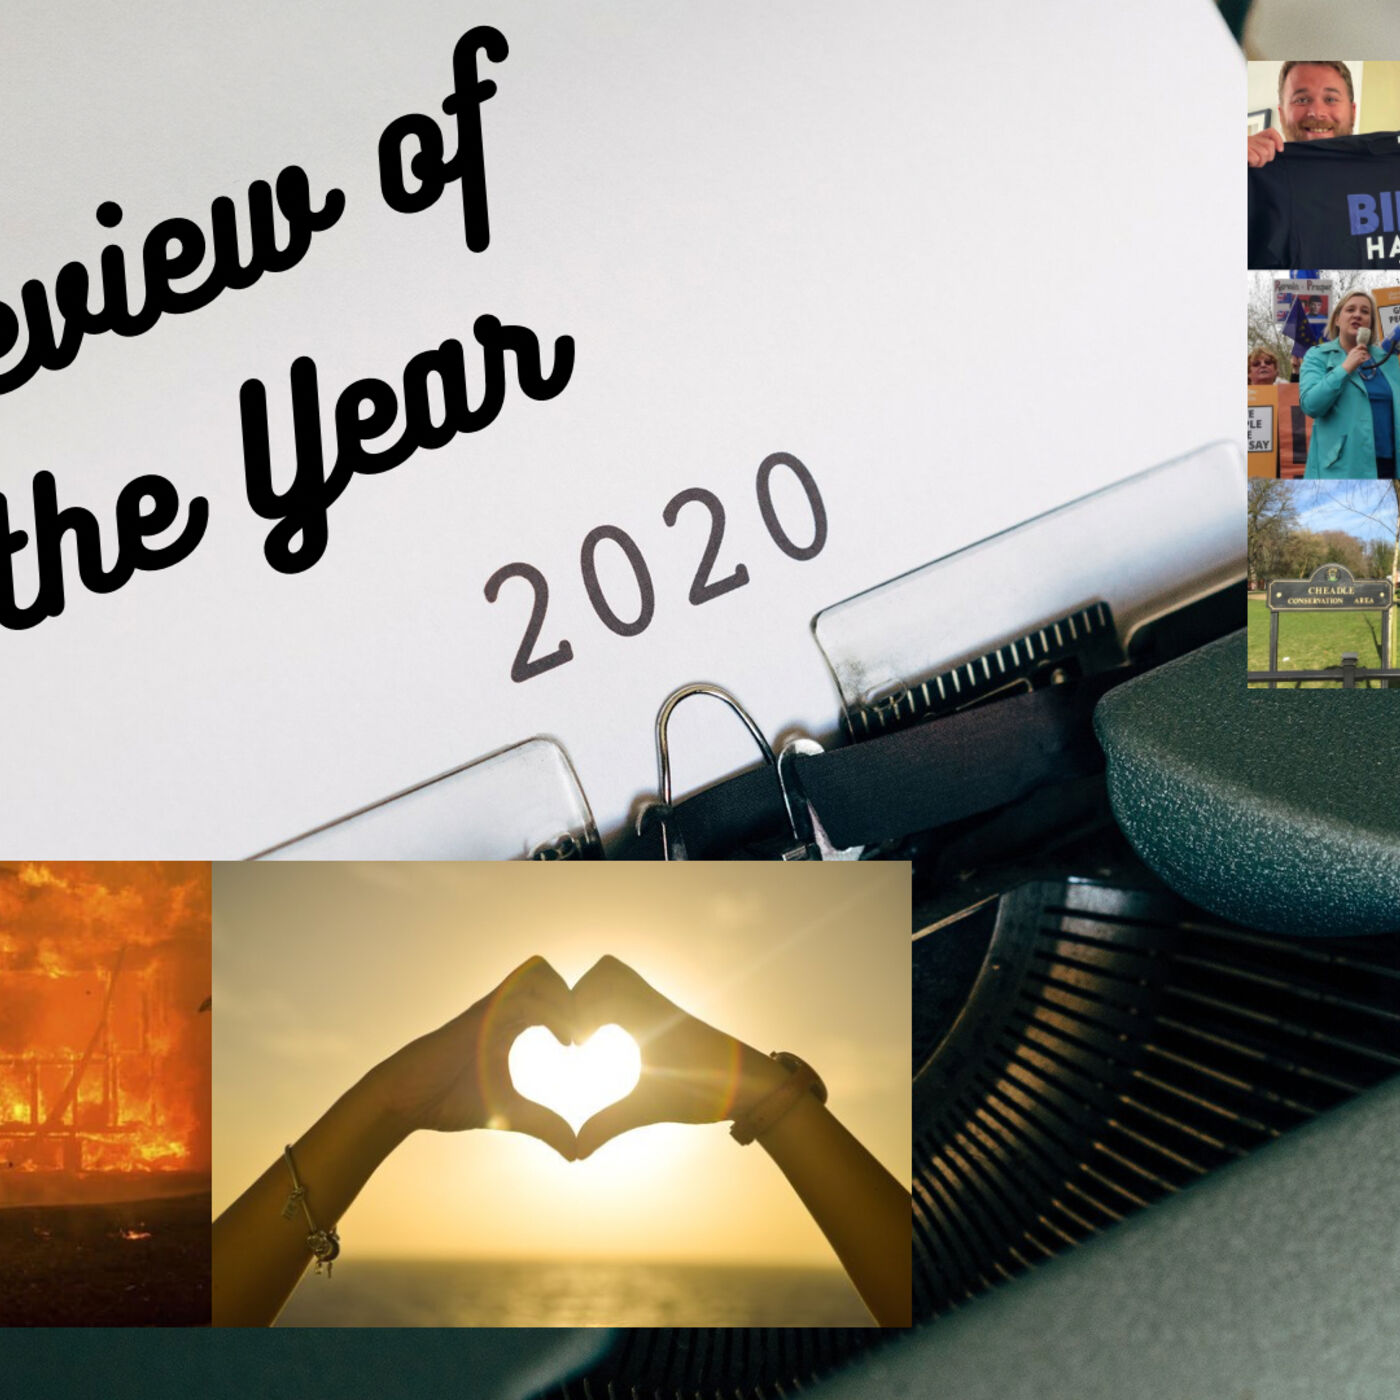 Bushfires & BeKind - Review of the year PART ONE